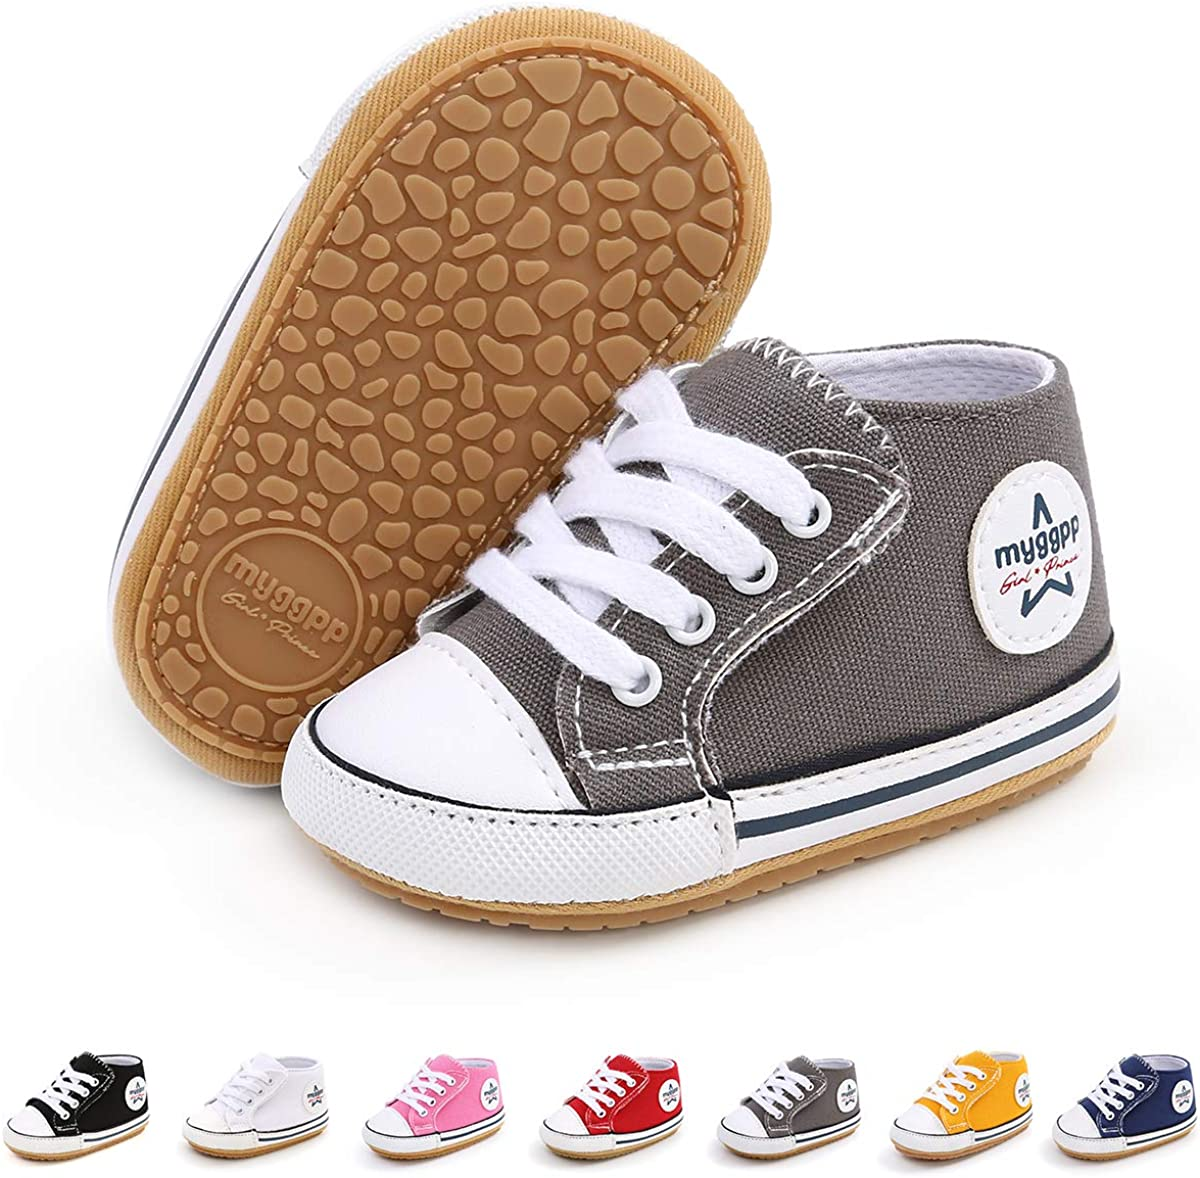 BEBARFER Max 78% OFF Baby Boys Girls Shoes Infant Canvas Sneakers Anti-Slip New life